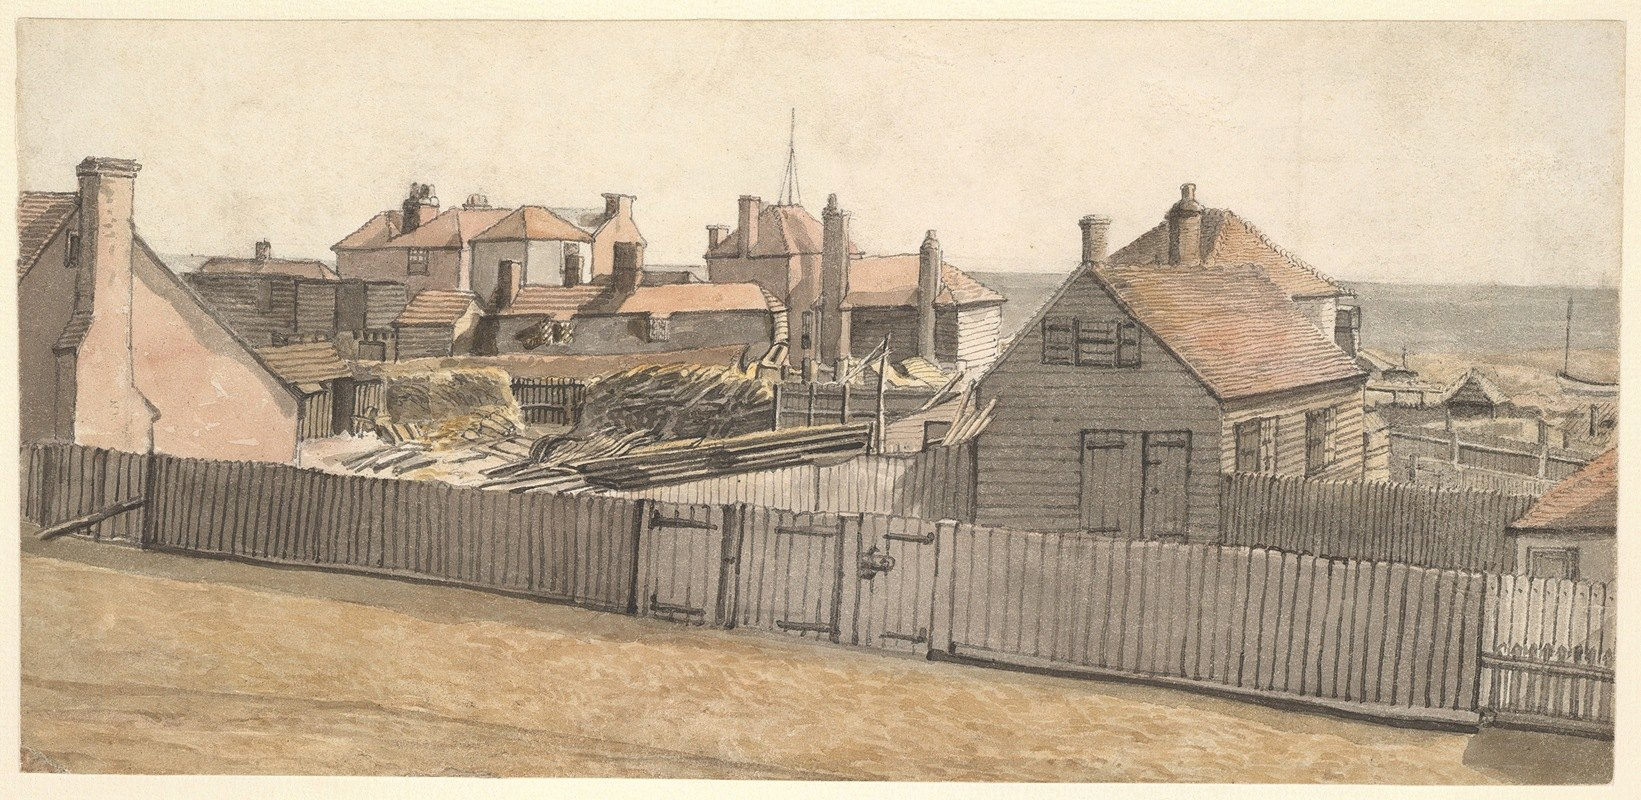 William Henry Hunt - Fishermen's Cottages and Other Houses on the Beach at Hastings